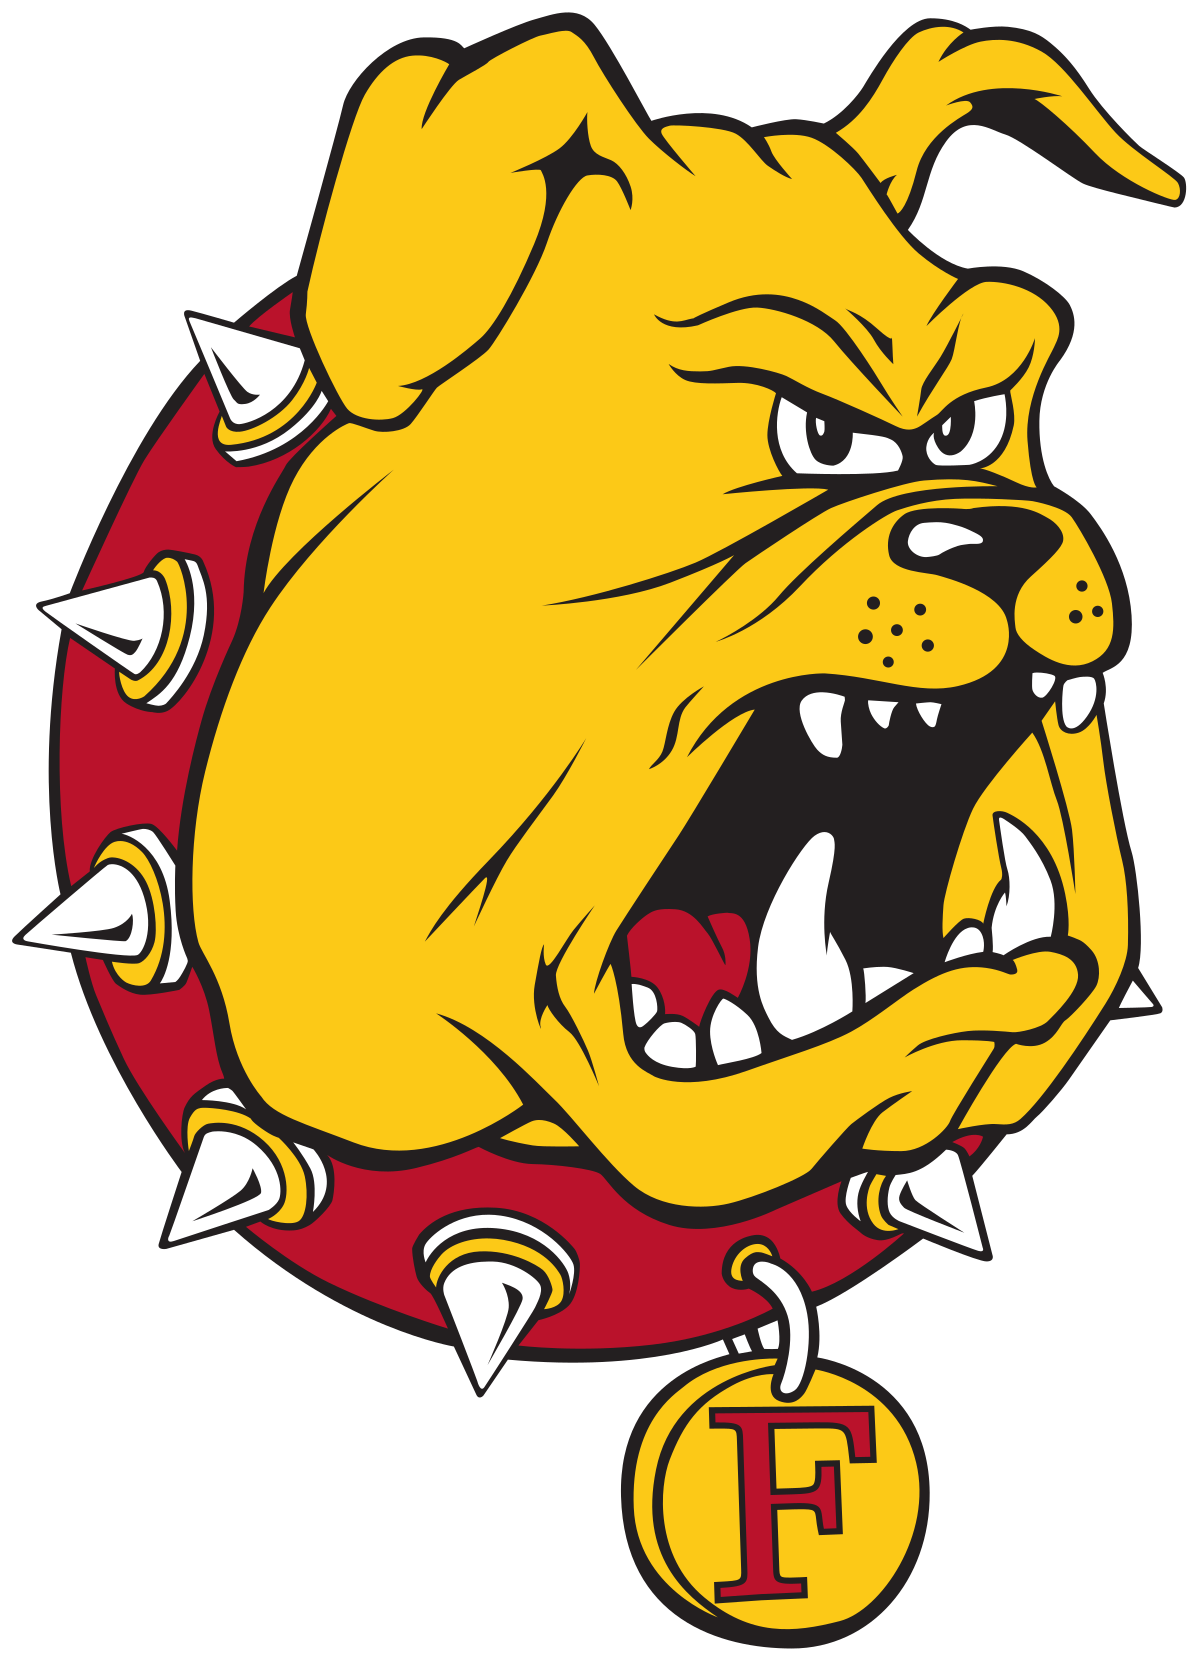 Bulldog basketball playoffs clipart clip art freeuse download Ferris State Bulldogs - Wikipedia clip art freeuse download